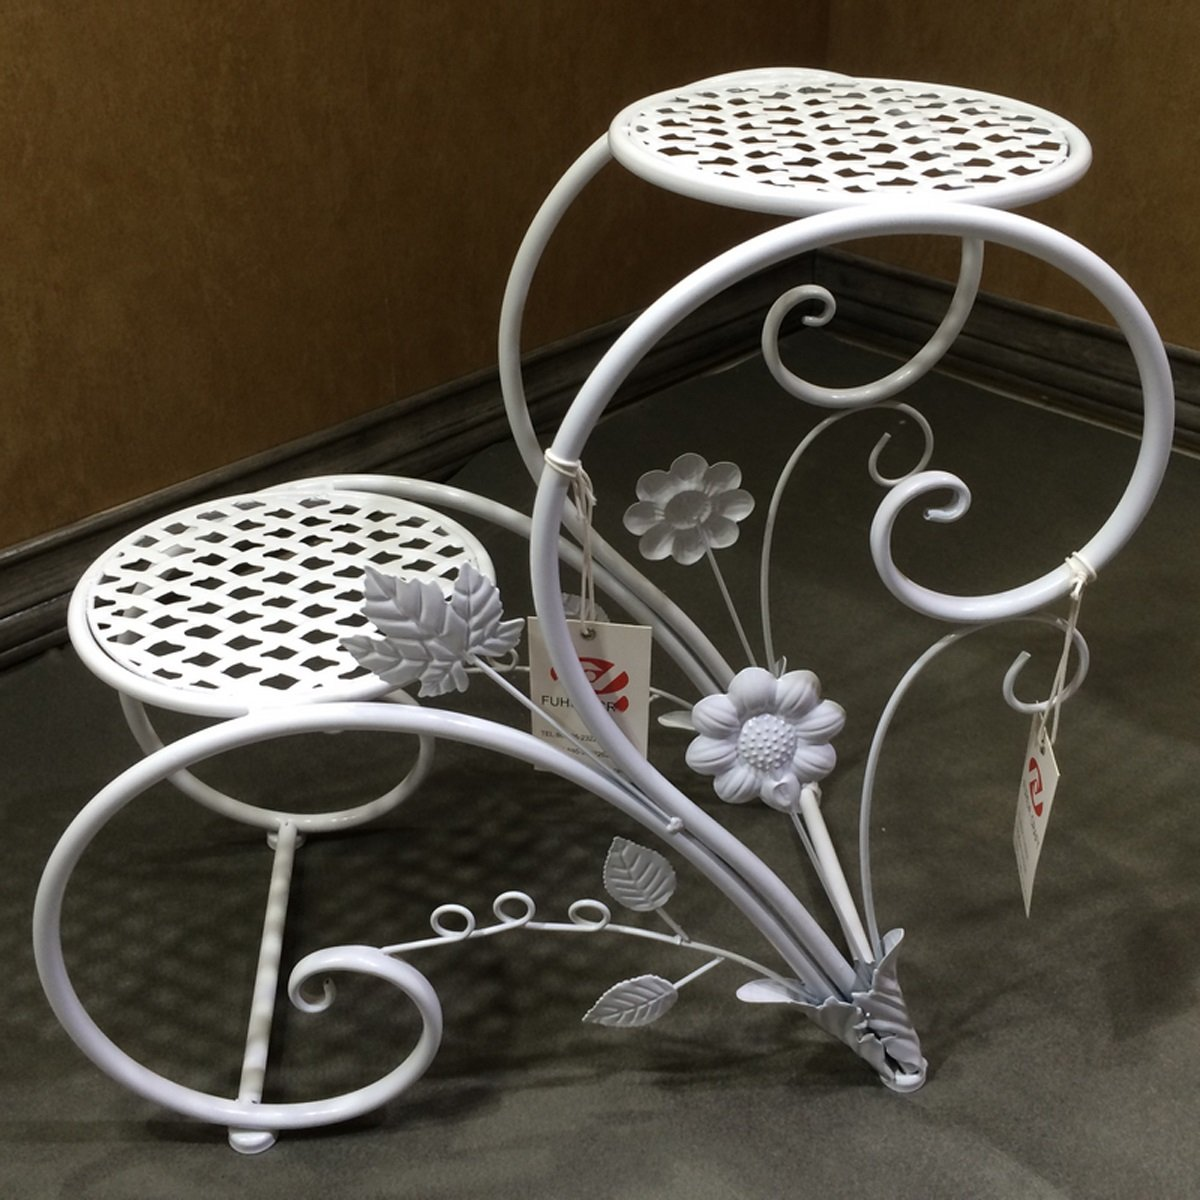 L;IAN Flower Pot Rack Iron Art European-Style Indoor Balcony Drop-Floor Flower Stand